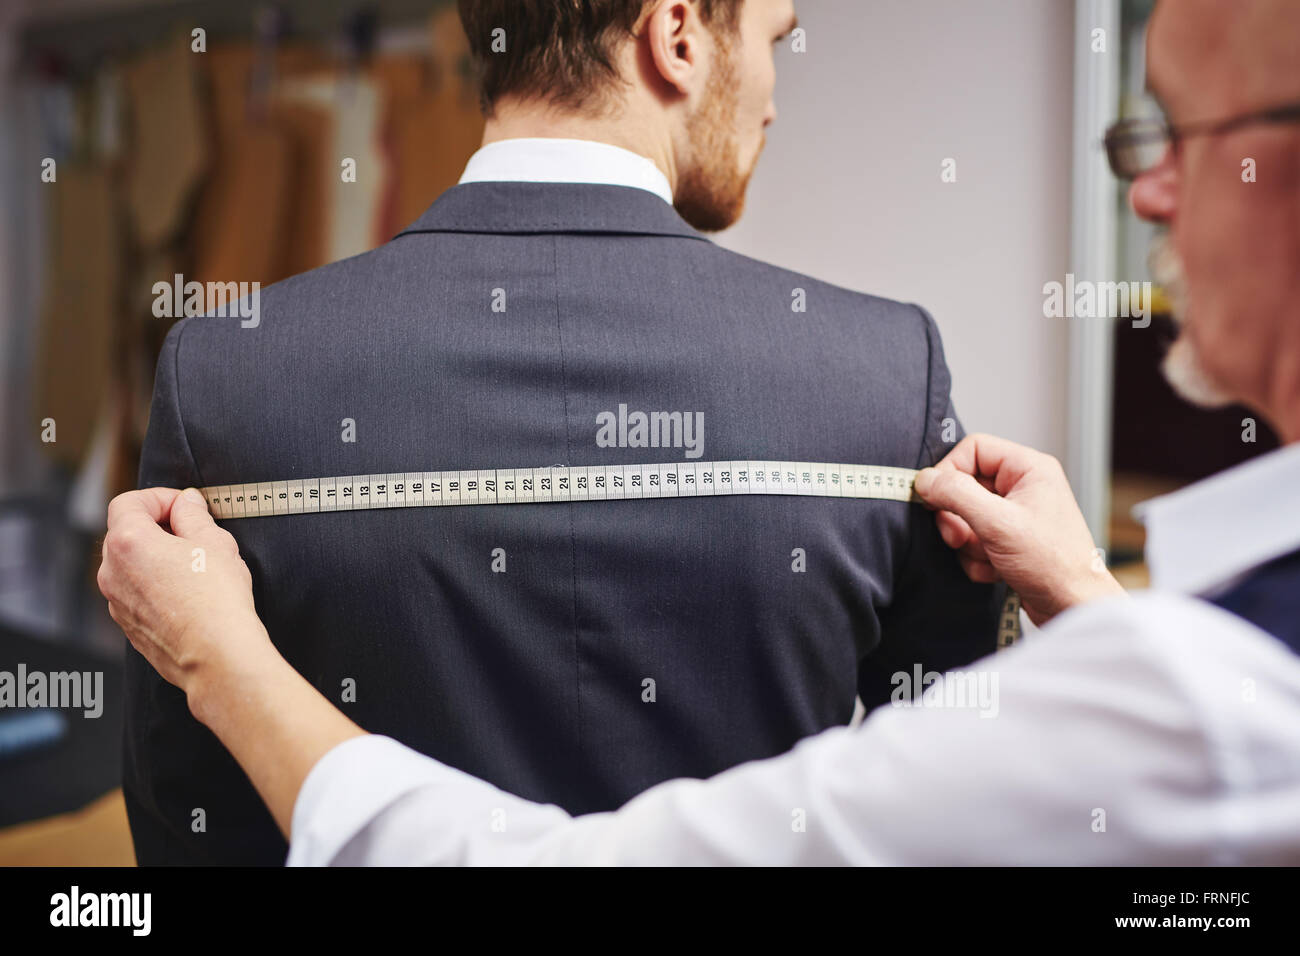 Measuring back of jacket - Stock Image